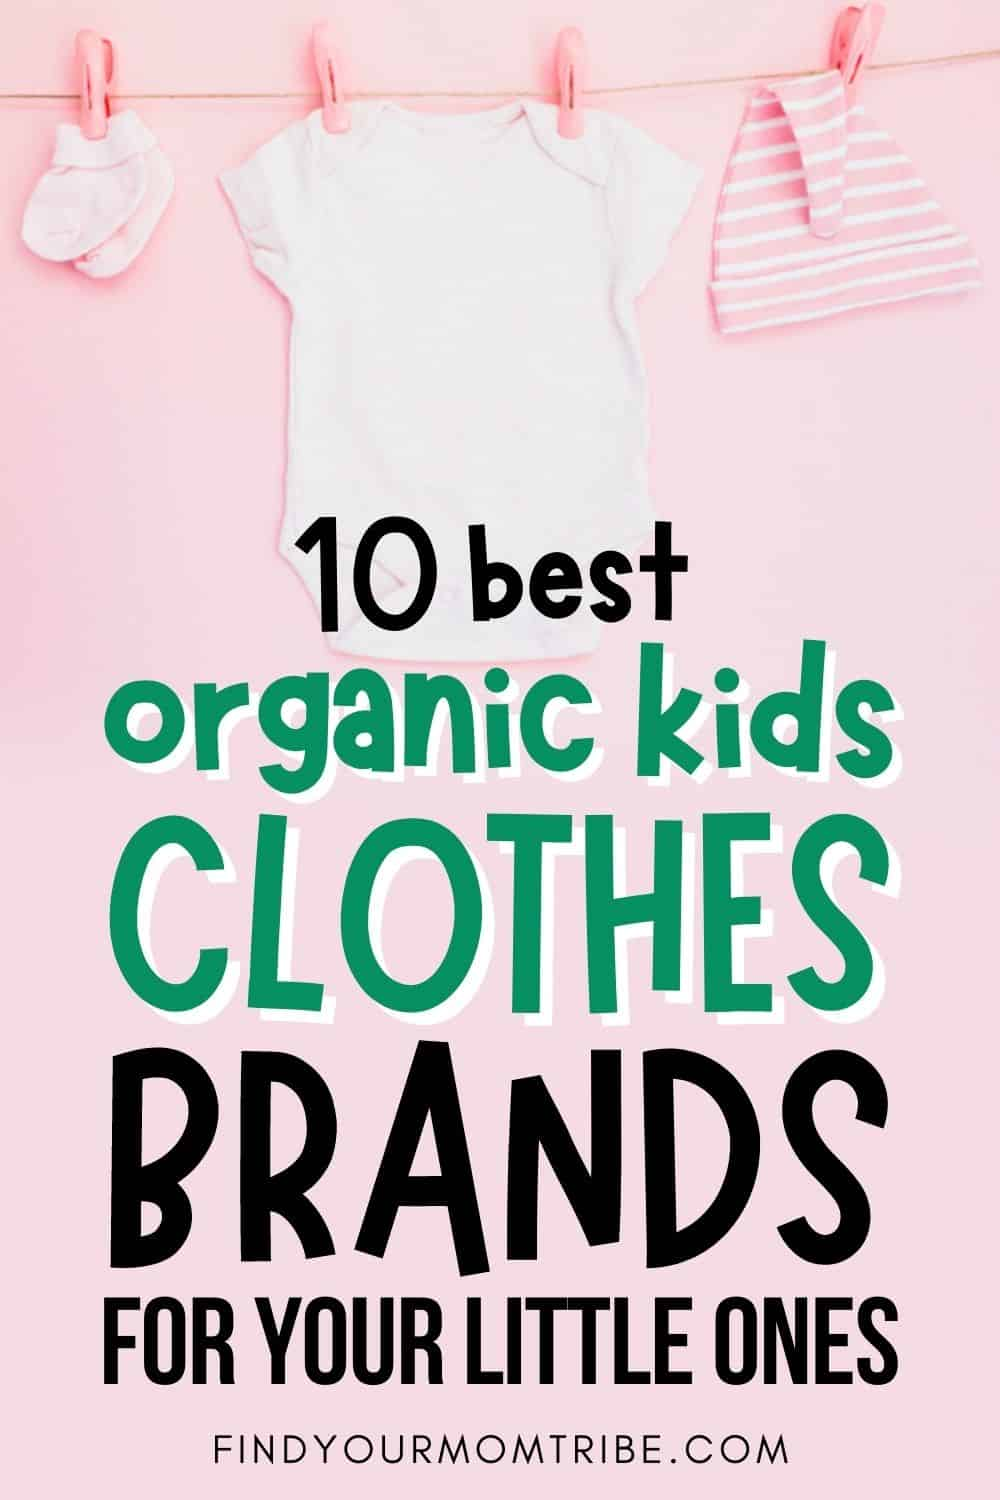 10 Best Organic Kids Clothes Brands For Your Little Ones Pinterest